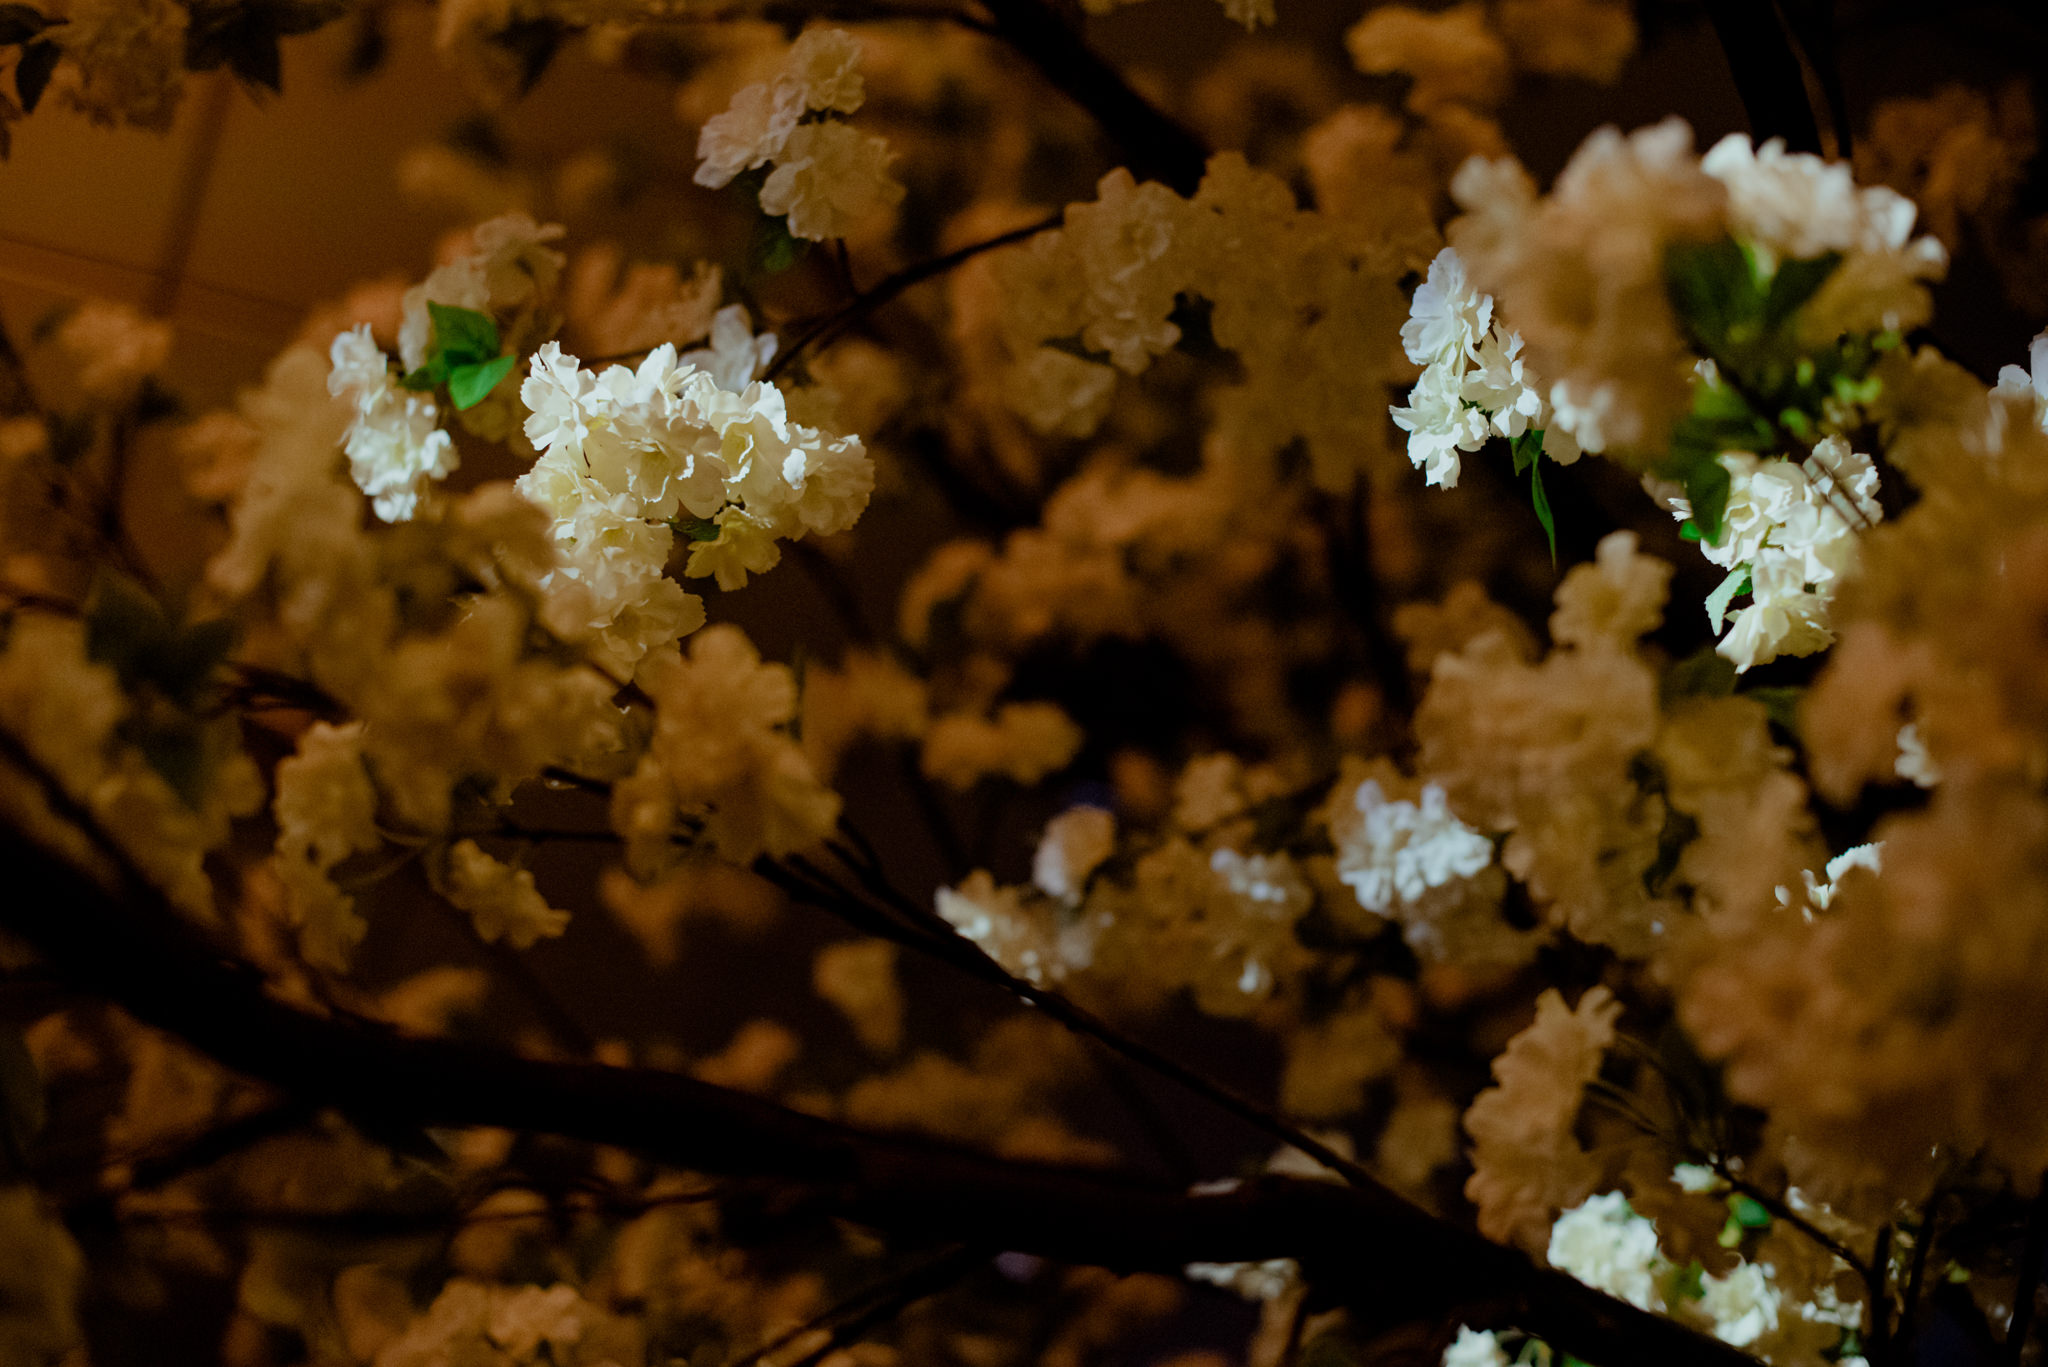 A spotlight shines on some blossoms on a tree